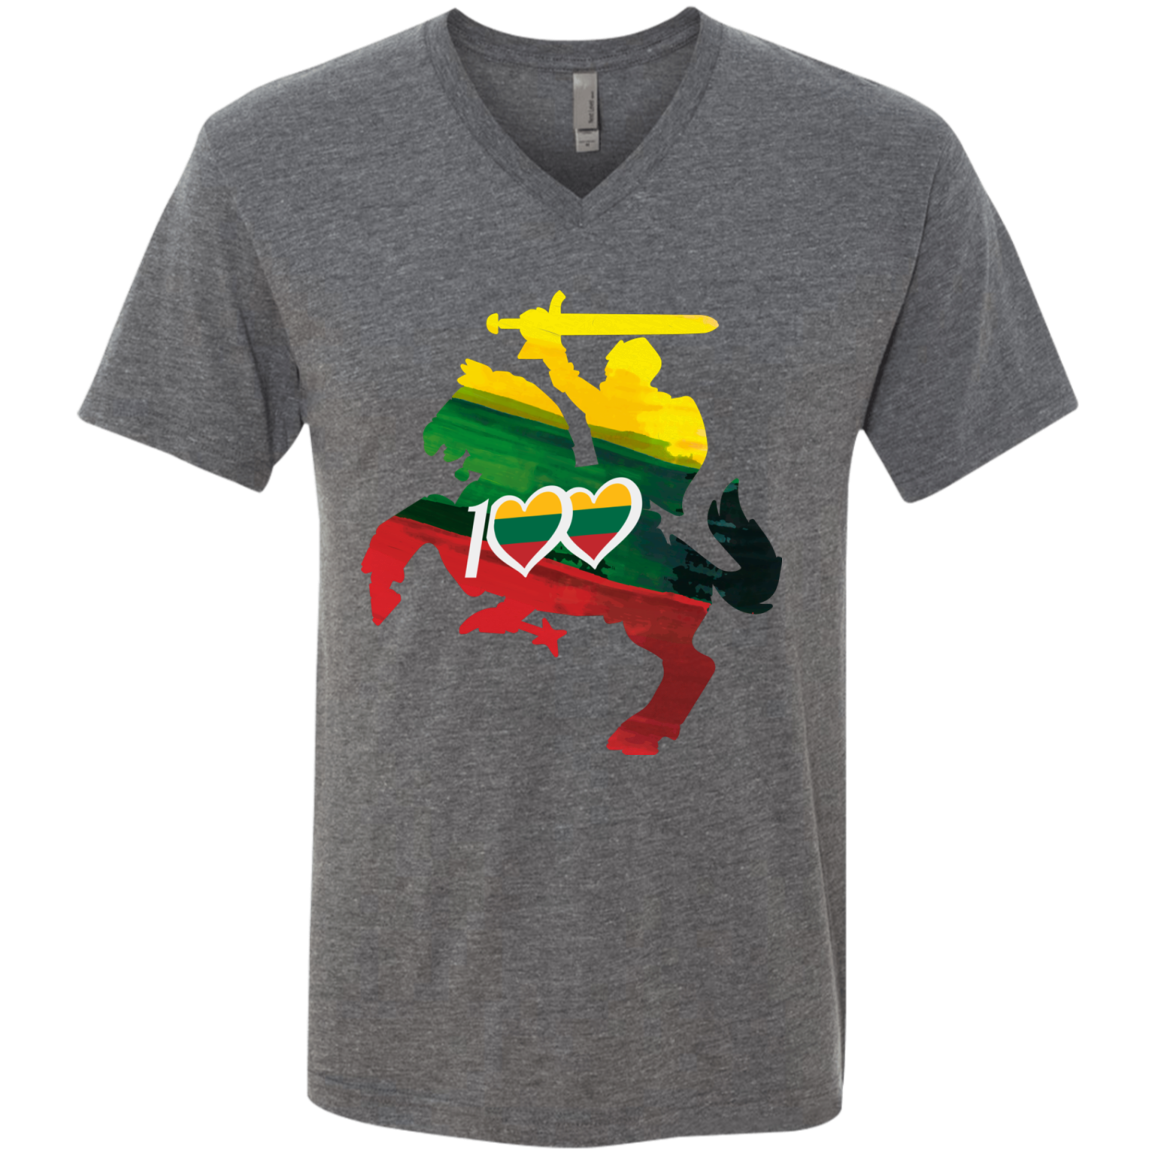 Restored 100 (Knight) -- Vyrams Premium V-Neck T-Shirt